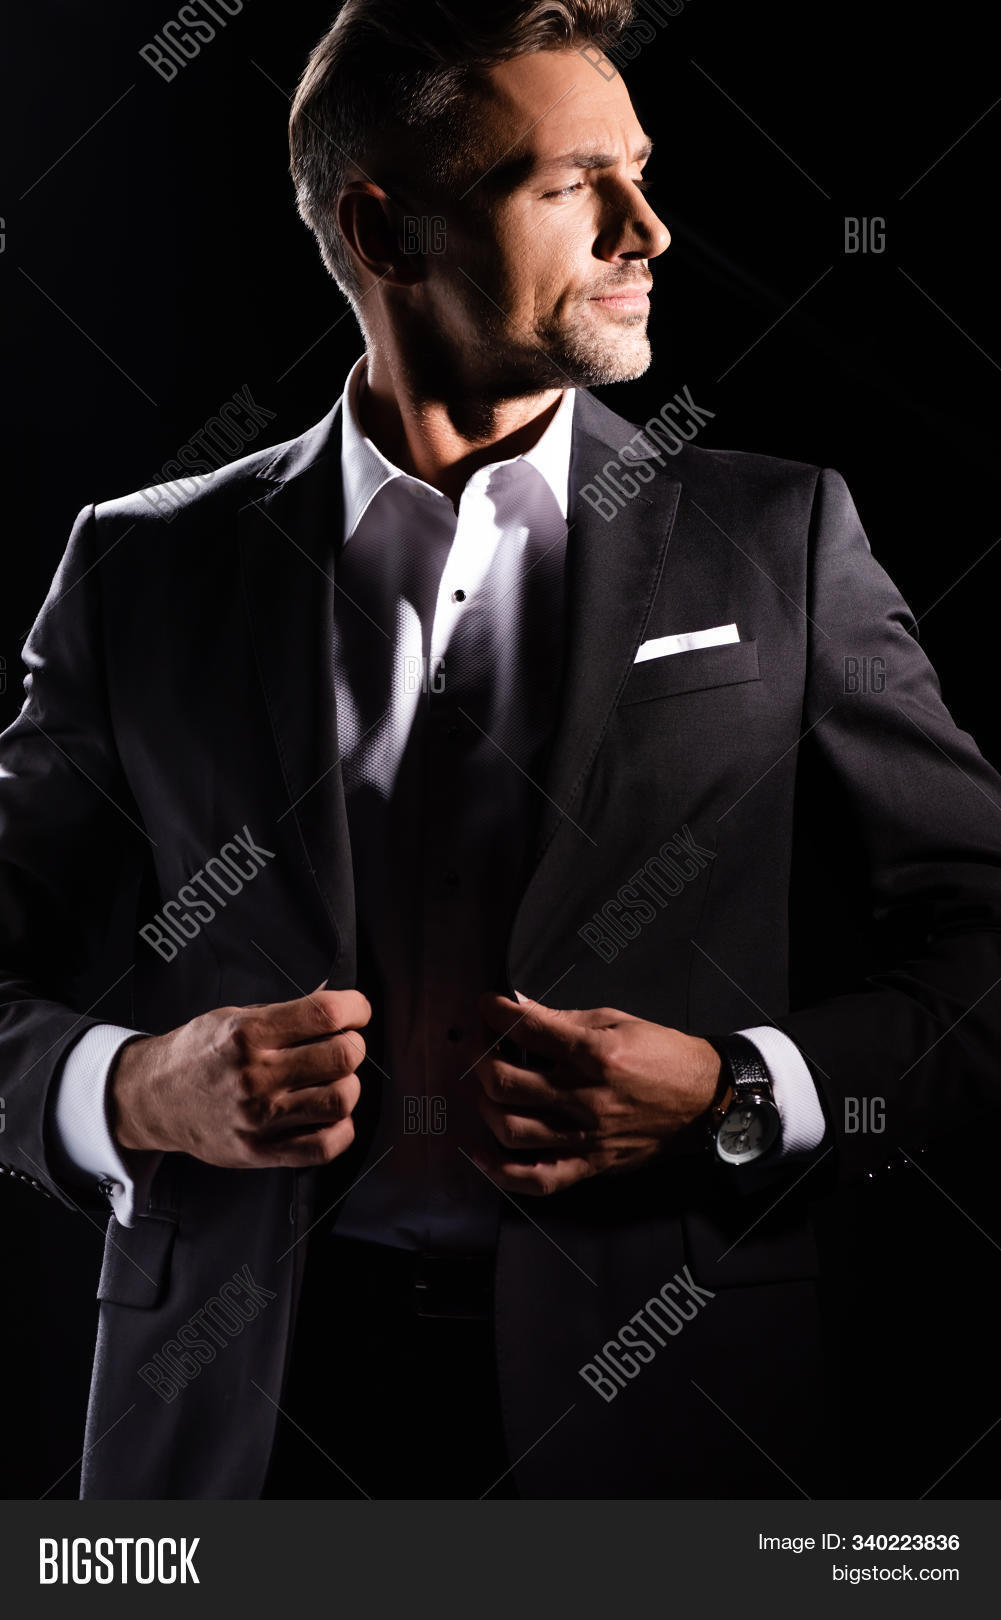 Handsome businessman adjusting lapels of jacket and looking away isolated on black